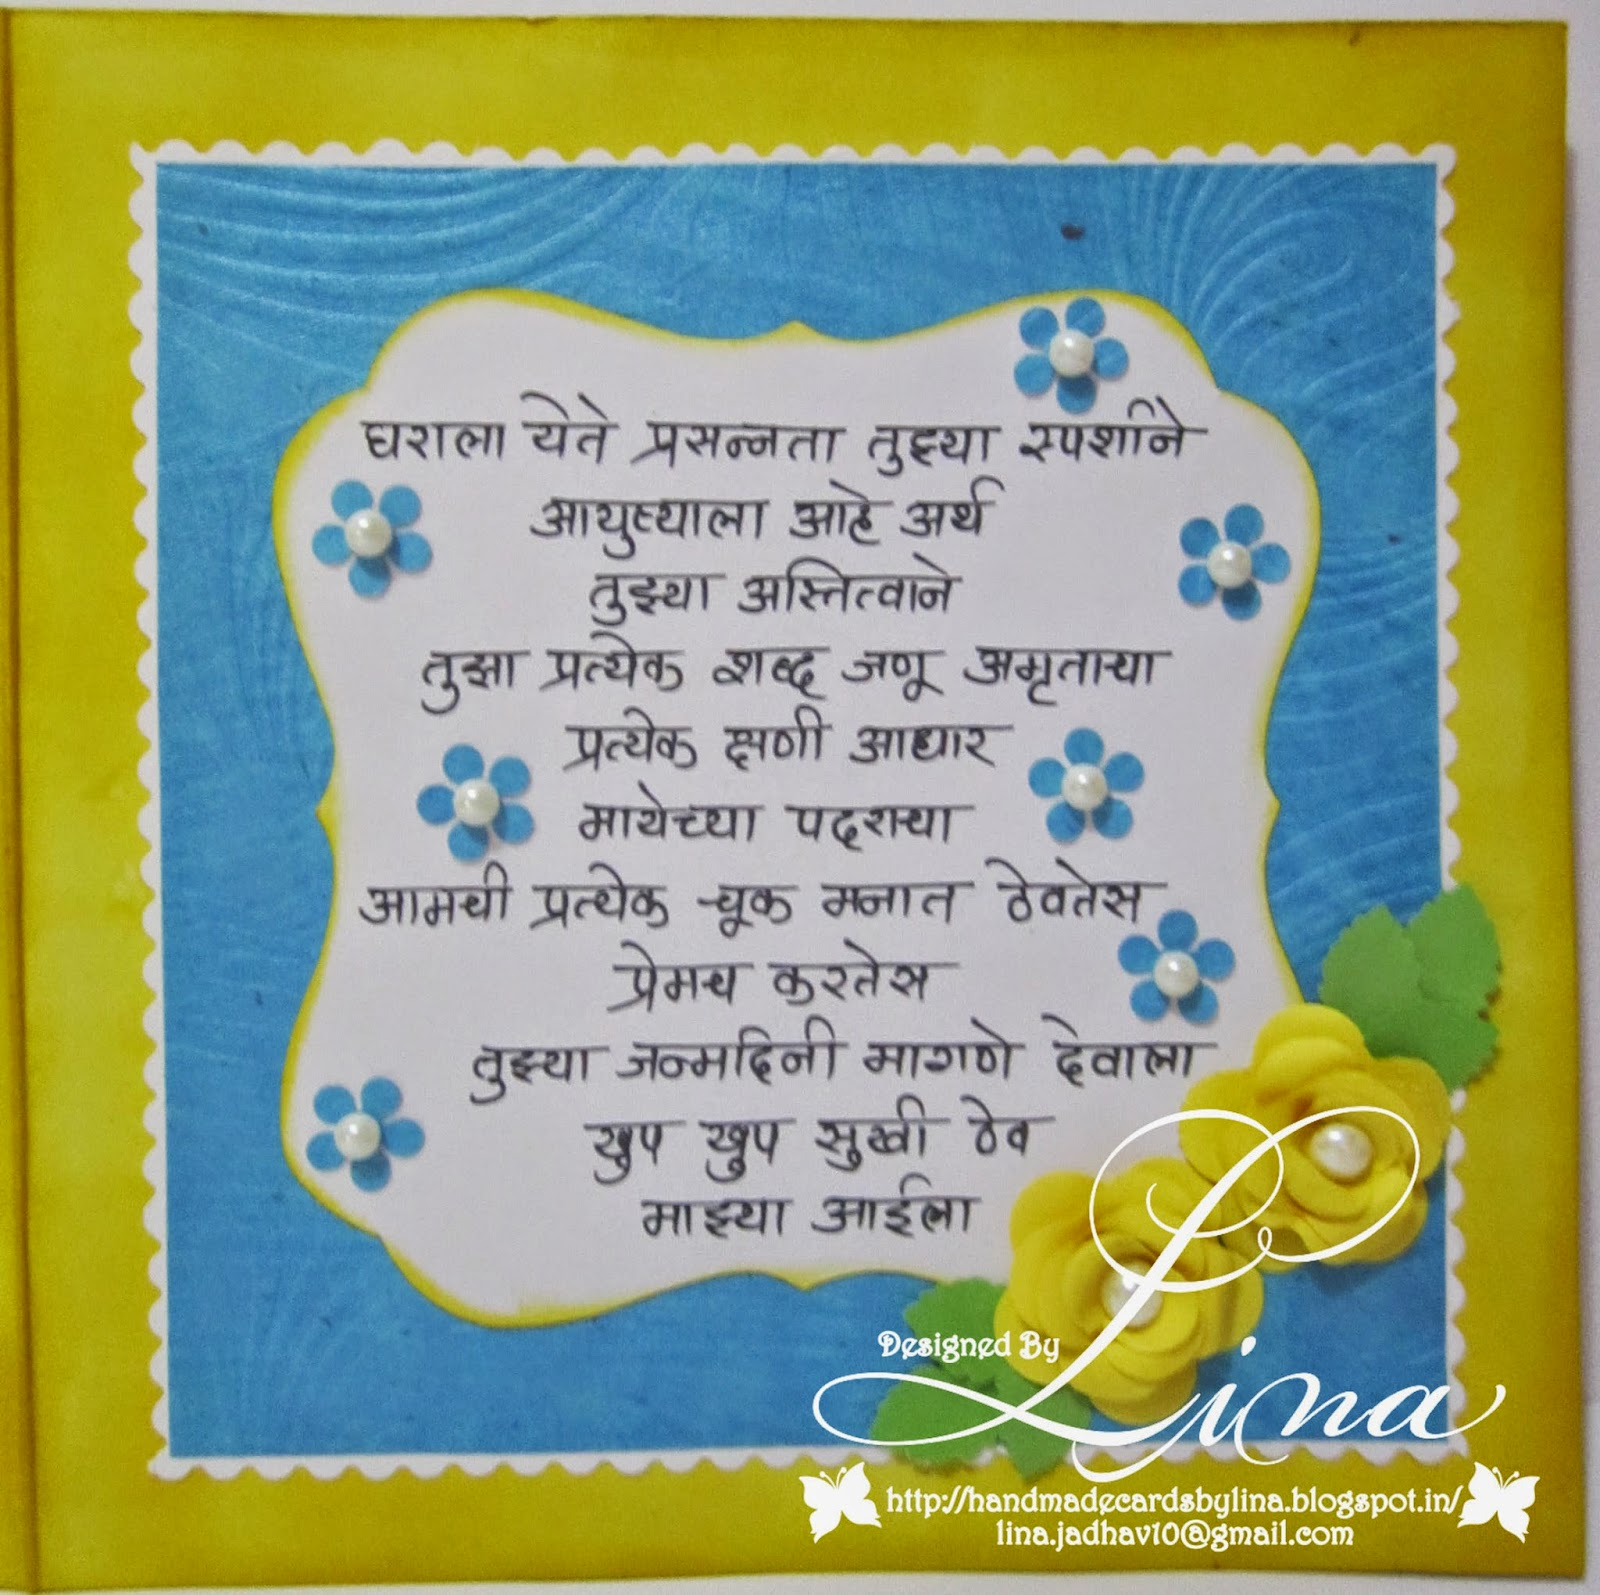 Best greeting cards for moms birthday in marathi image collection birthday marathi greeting cards marathi greeting cards marathi entering this card to m4hsunfo